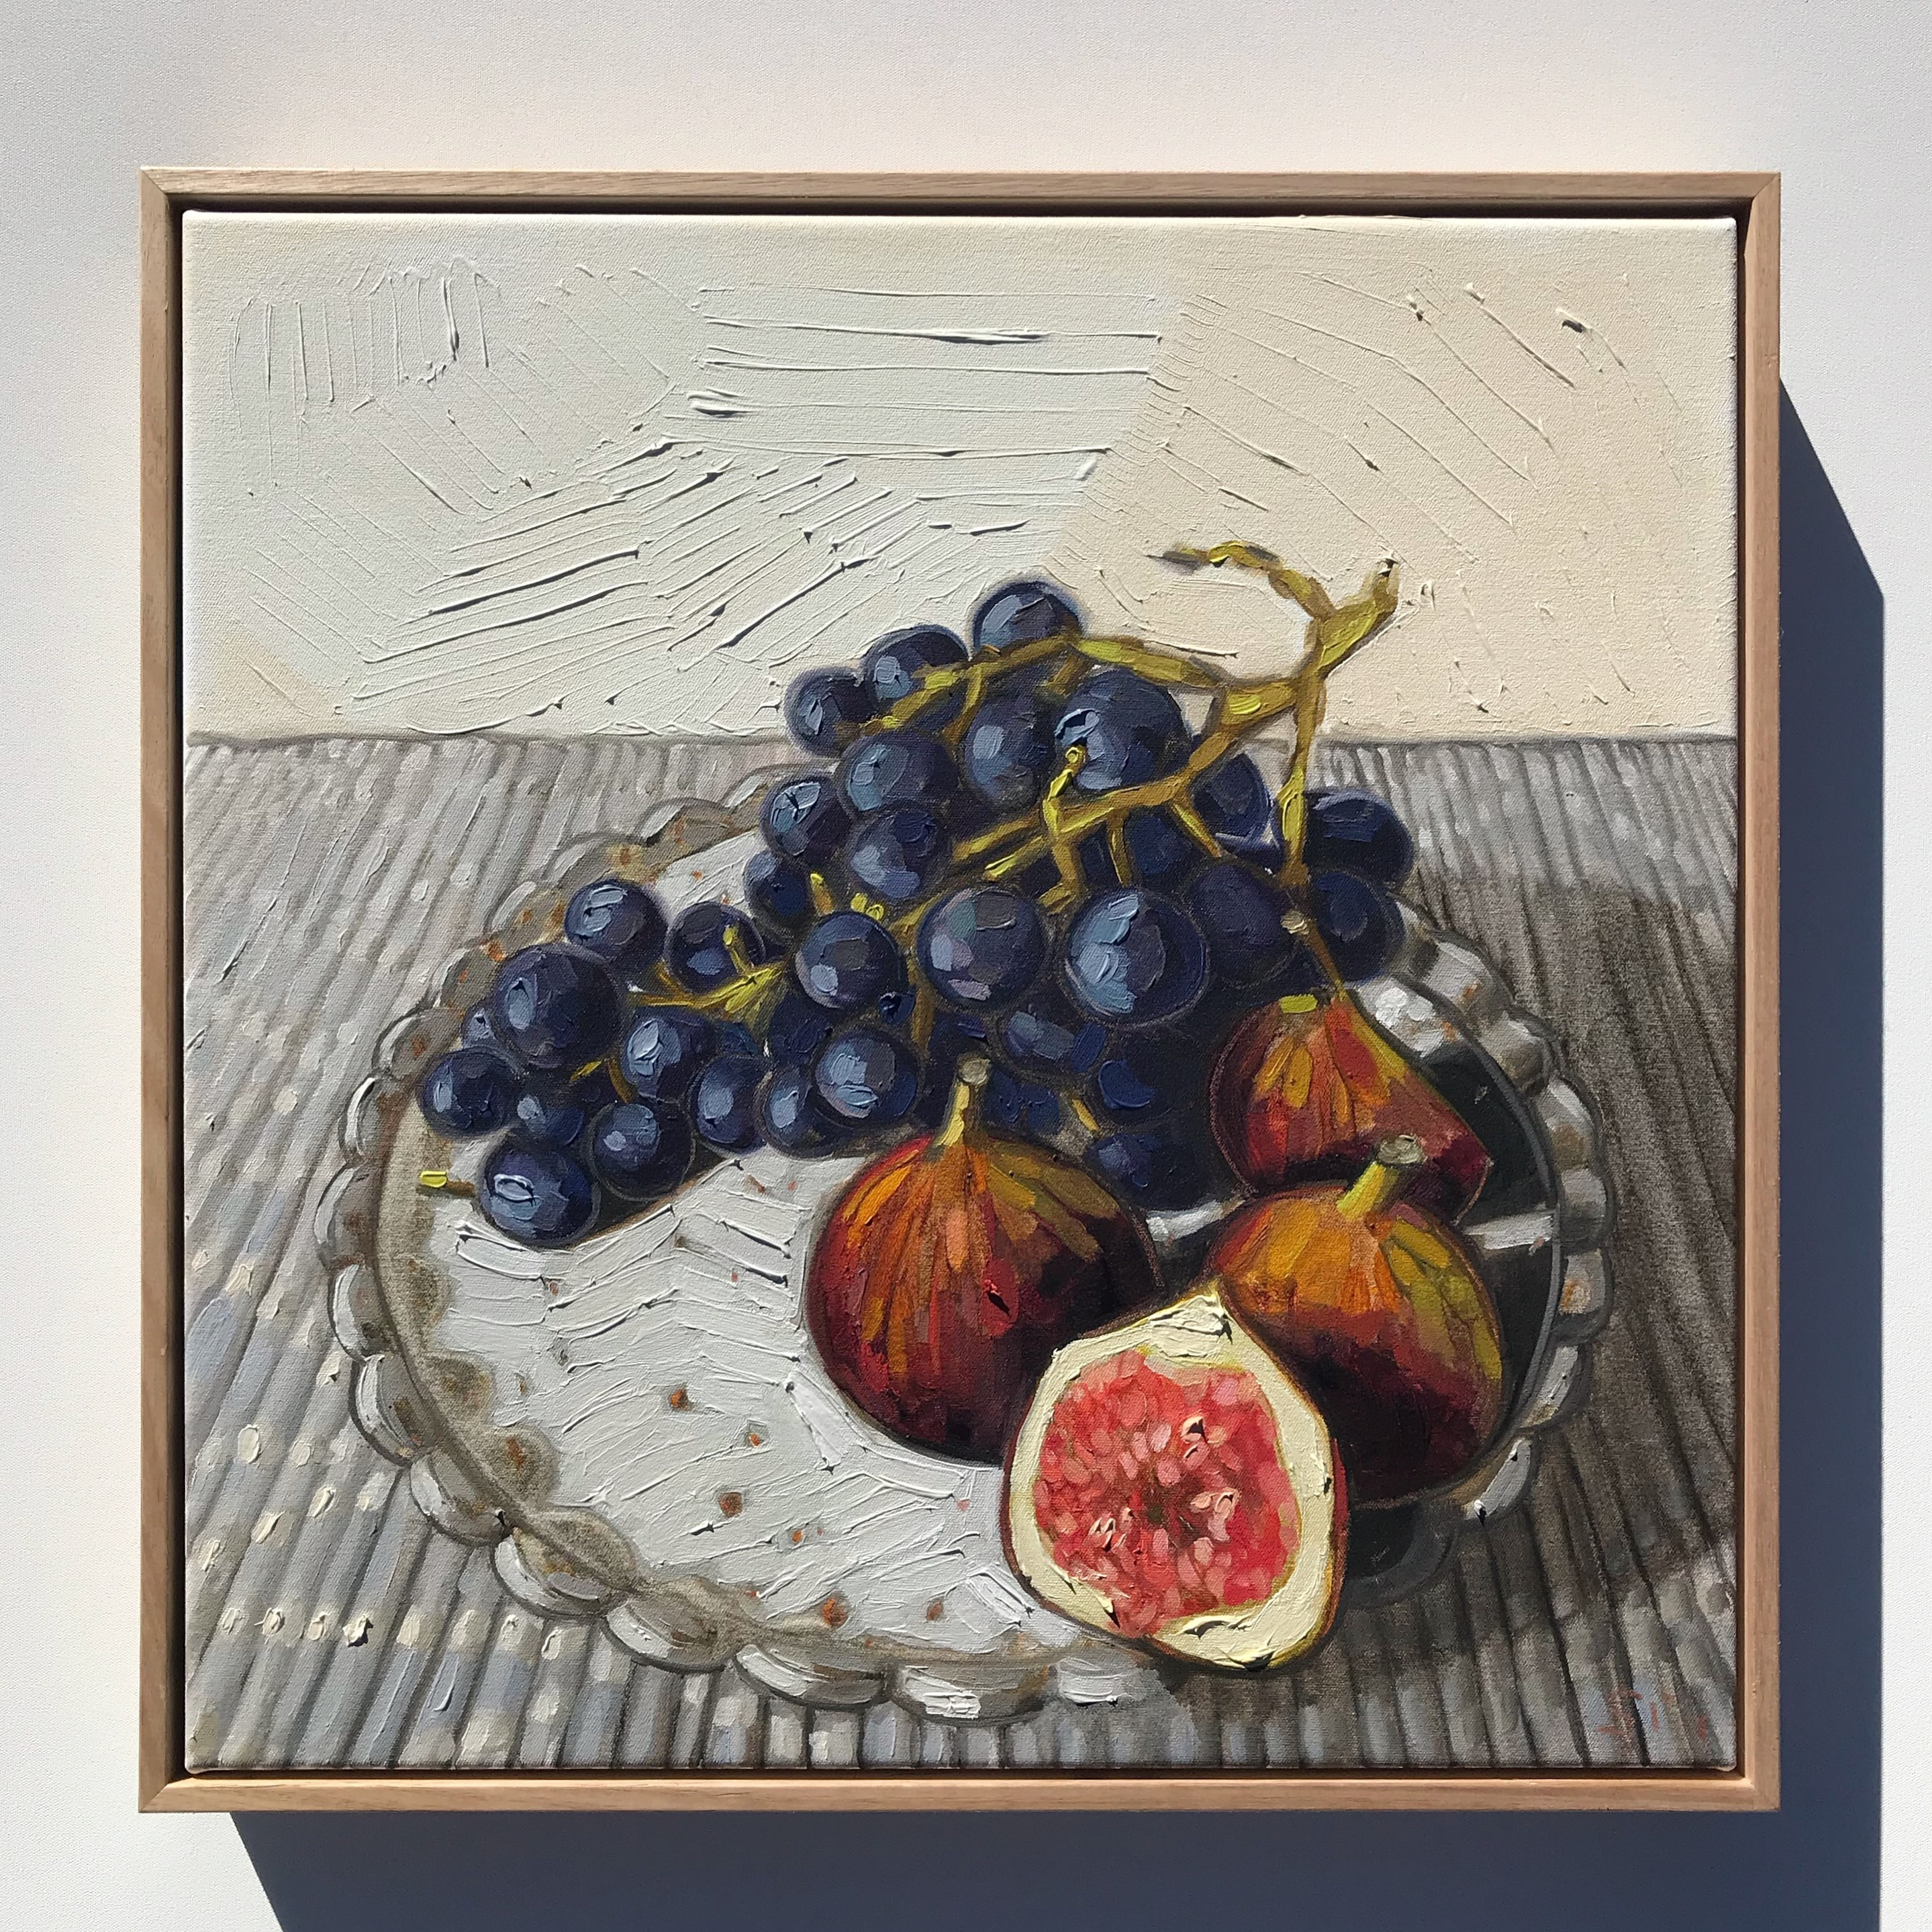 'Grapes & Figs' 47x47cm